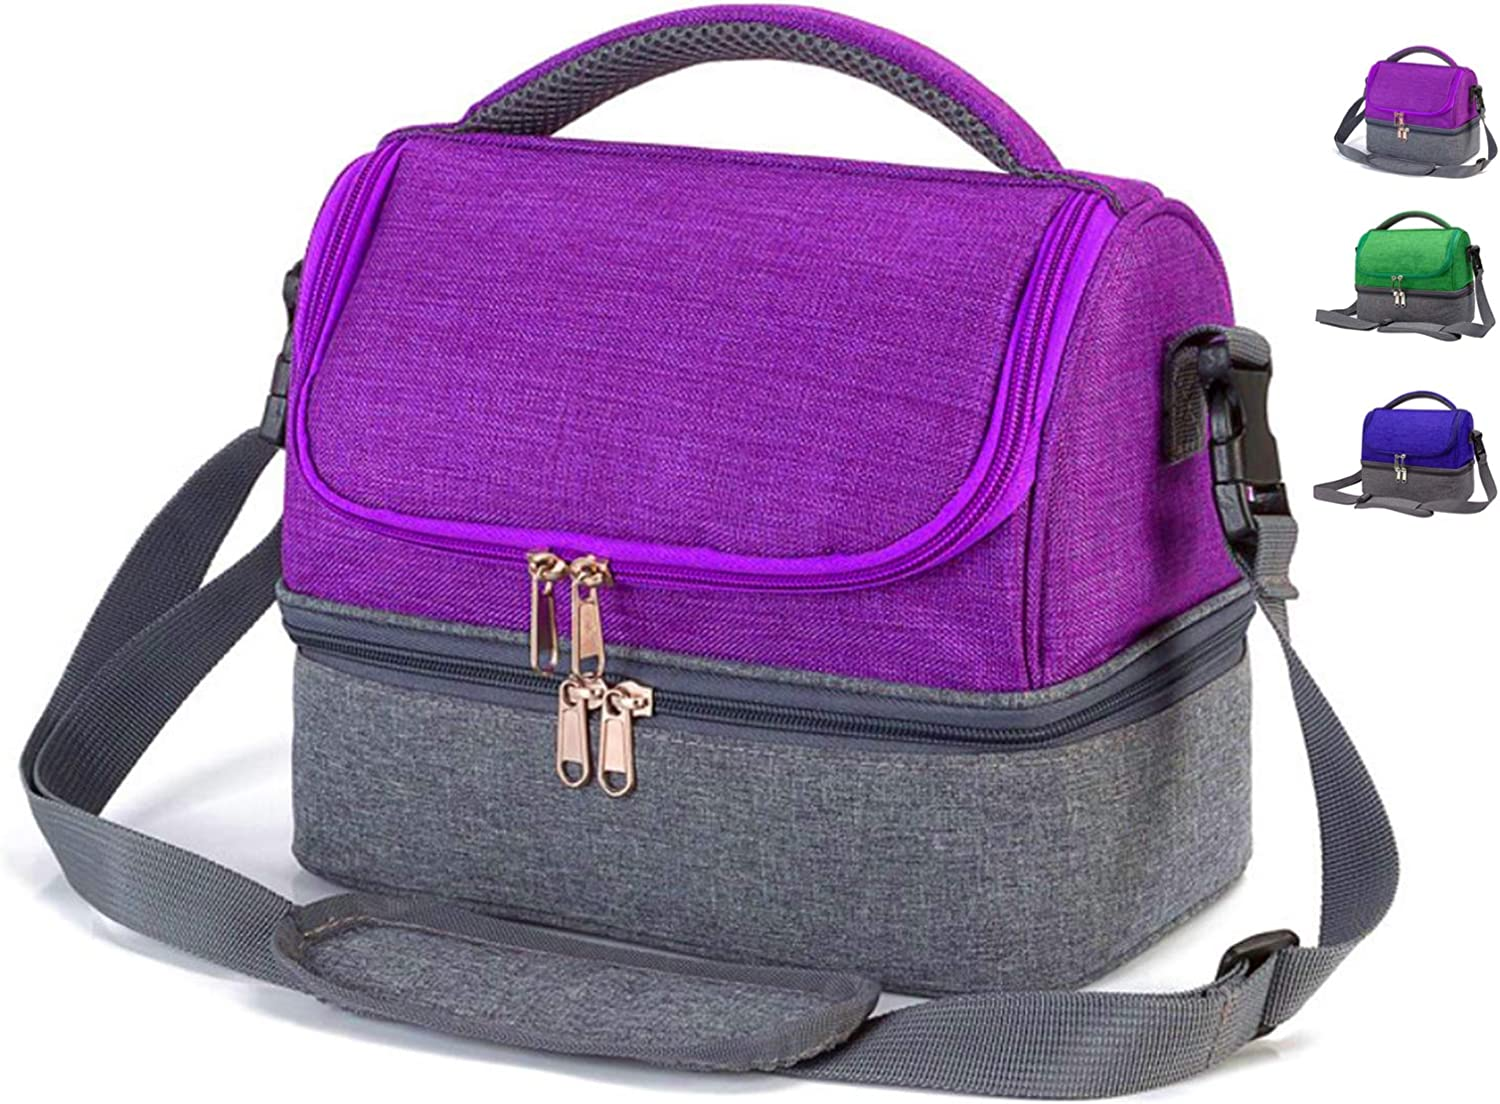 Insulated Lunch Box Bag for Kids Boys Girls Small Lunch Cooler Bags for Women Men Adults, Dual Compartment Cooler Tote Lunch Bag with Strap for School Work Camping Beach Picnic (Purple)